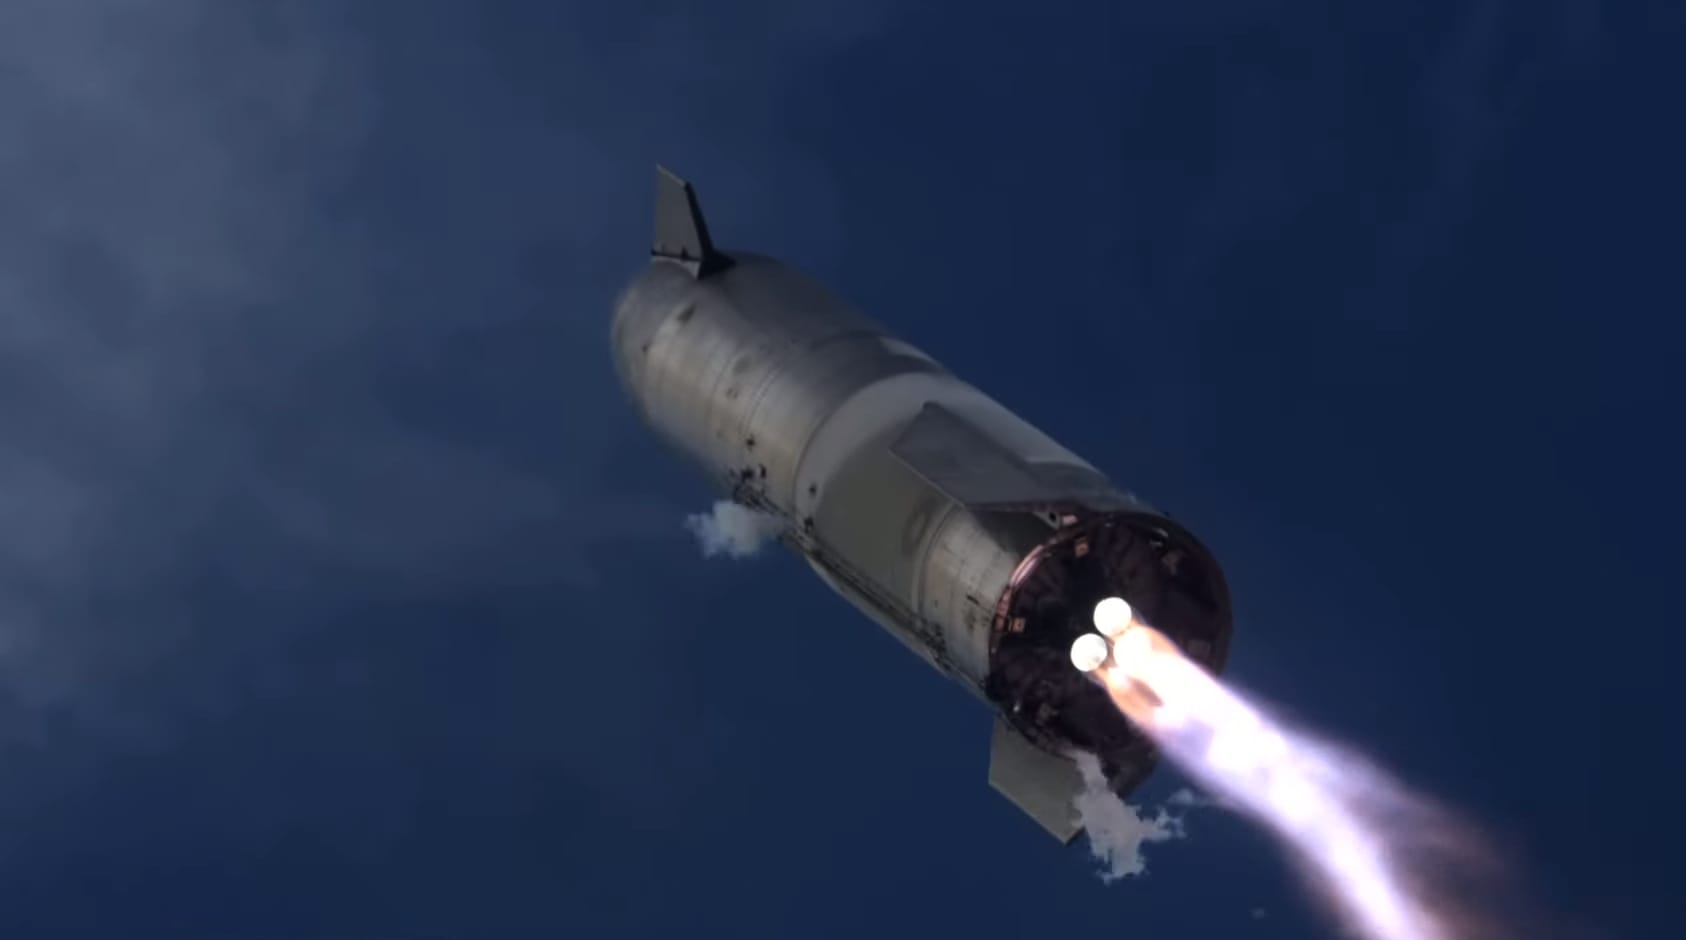 SpaceX Starship prototype rocket explodes after successful landing in high-altitude flight test